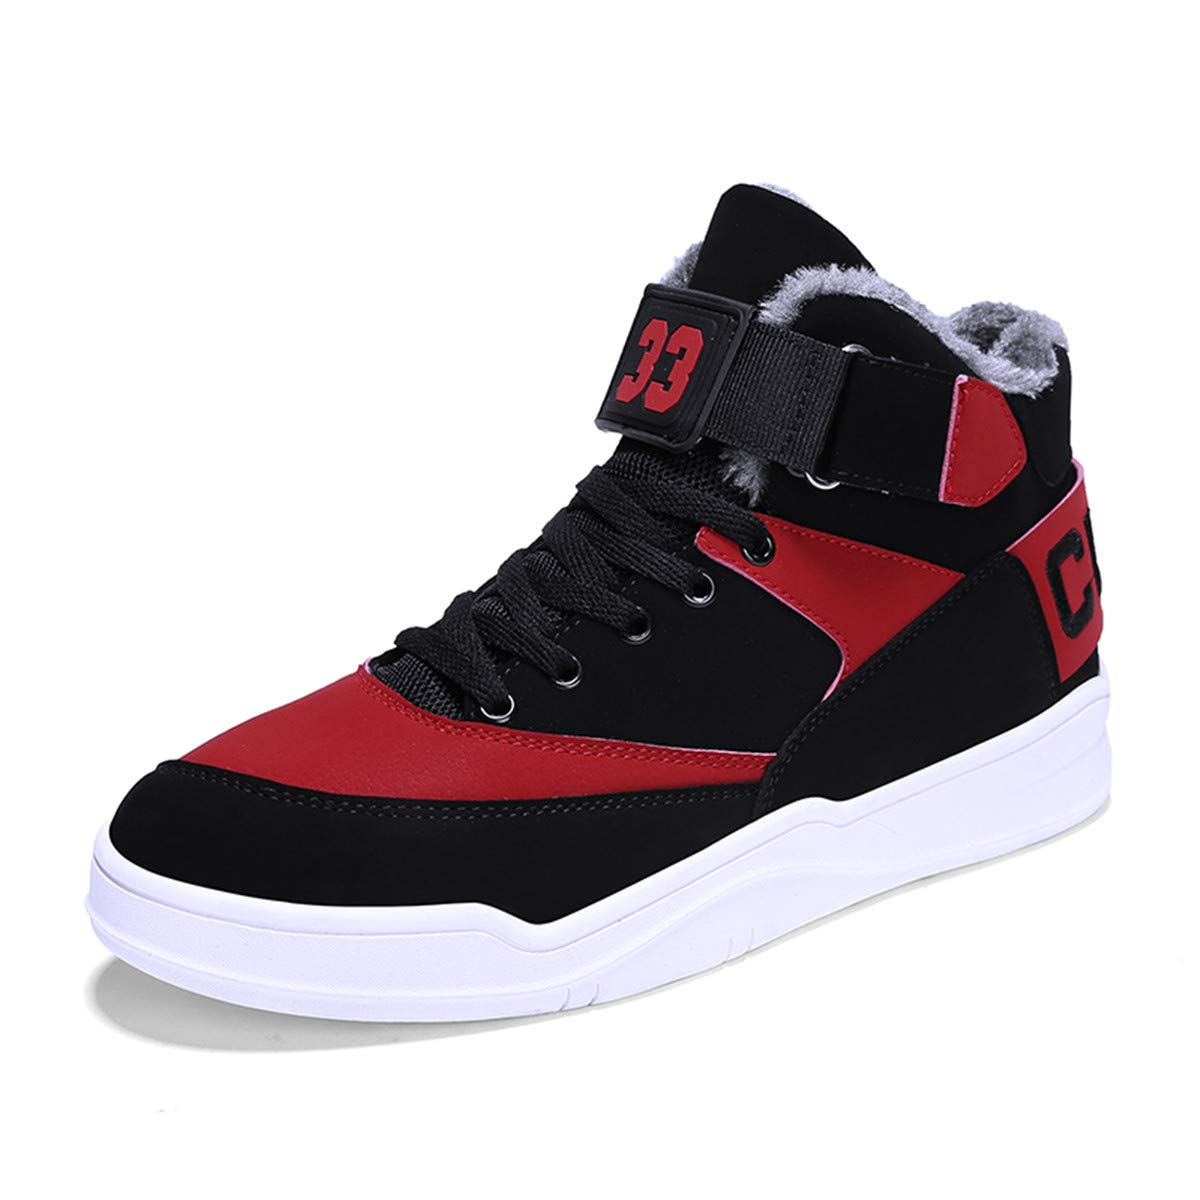 DUORO Homme Baskets Mode Hip Hop Chaussures Street Occasionnelles Marée Chaussures Mode...